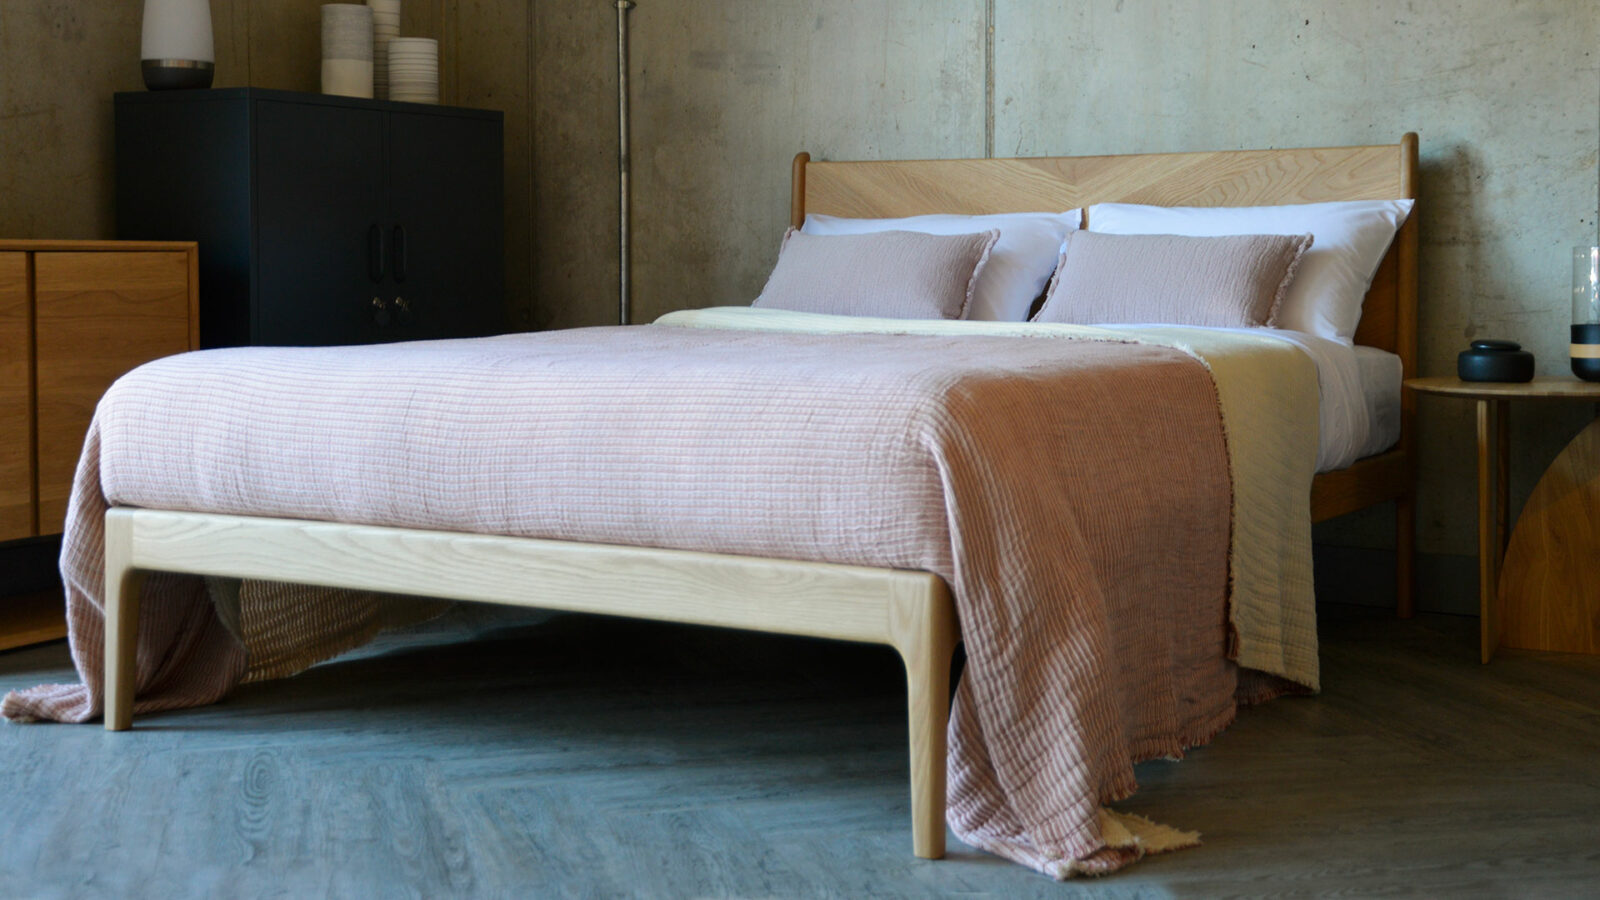 reversible textured cotton bedspread pink striped one side plain cream reverse